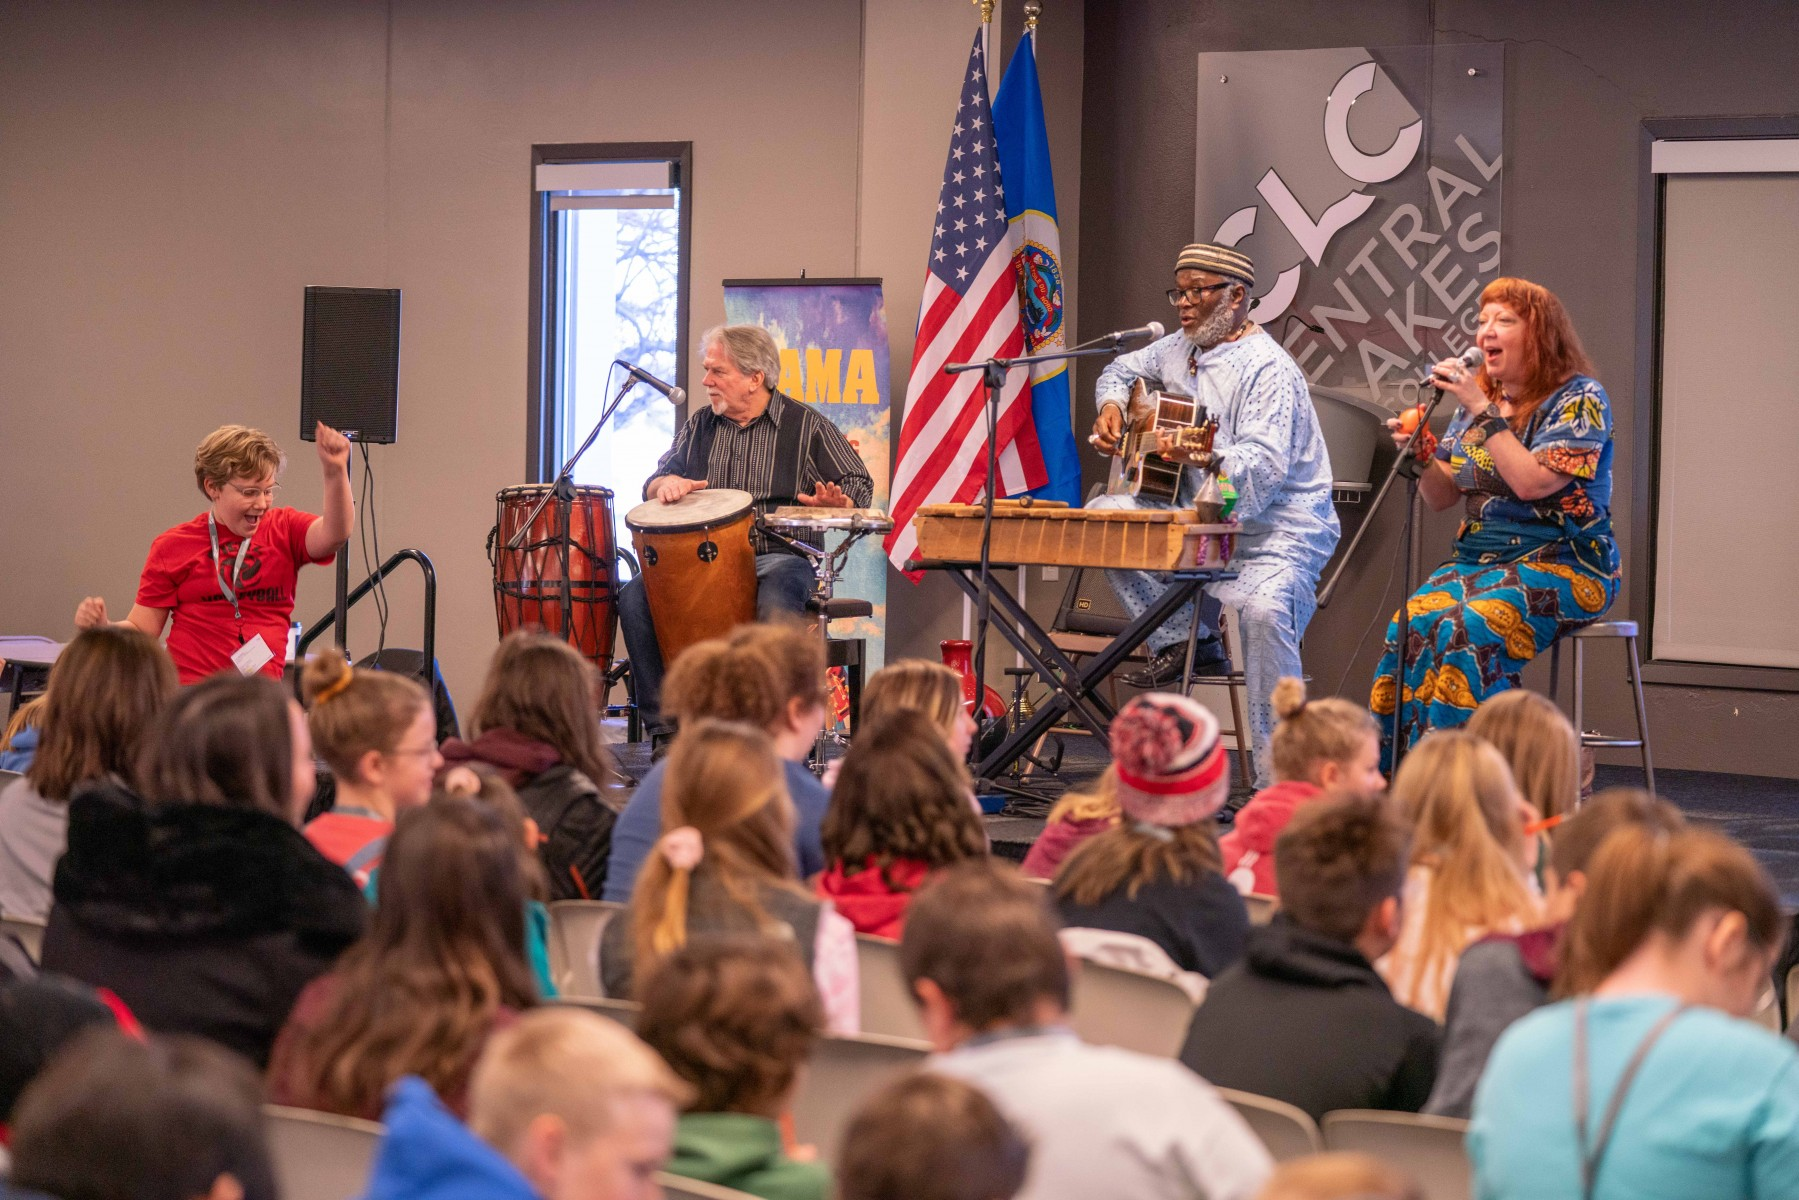 The African Conga Trio entertained aspiring authors, including a free-spirited student from the Pierz Public Schools at the 2019 Young Authors Conference, Nov. 13-14 at Central Lakes College – Staples campus. More than 350 students from 11 area schools and districts attended the hands-on workshop.